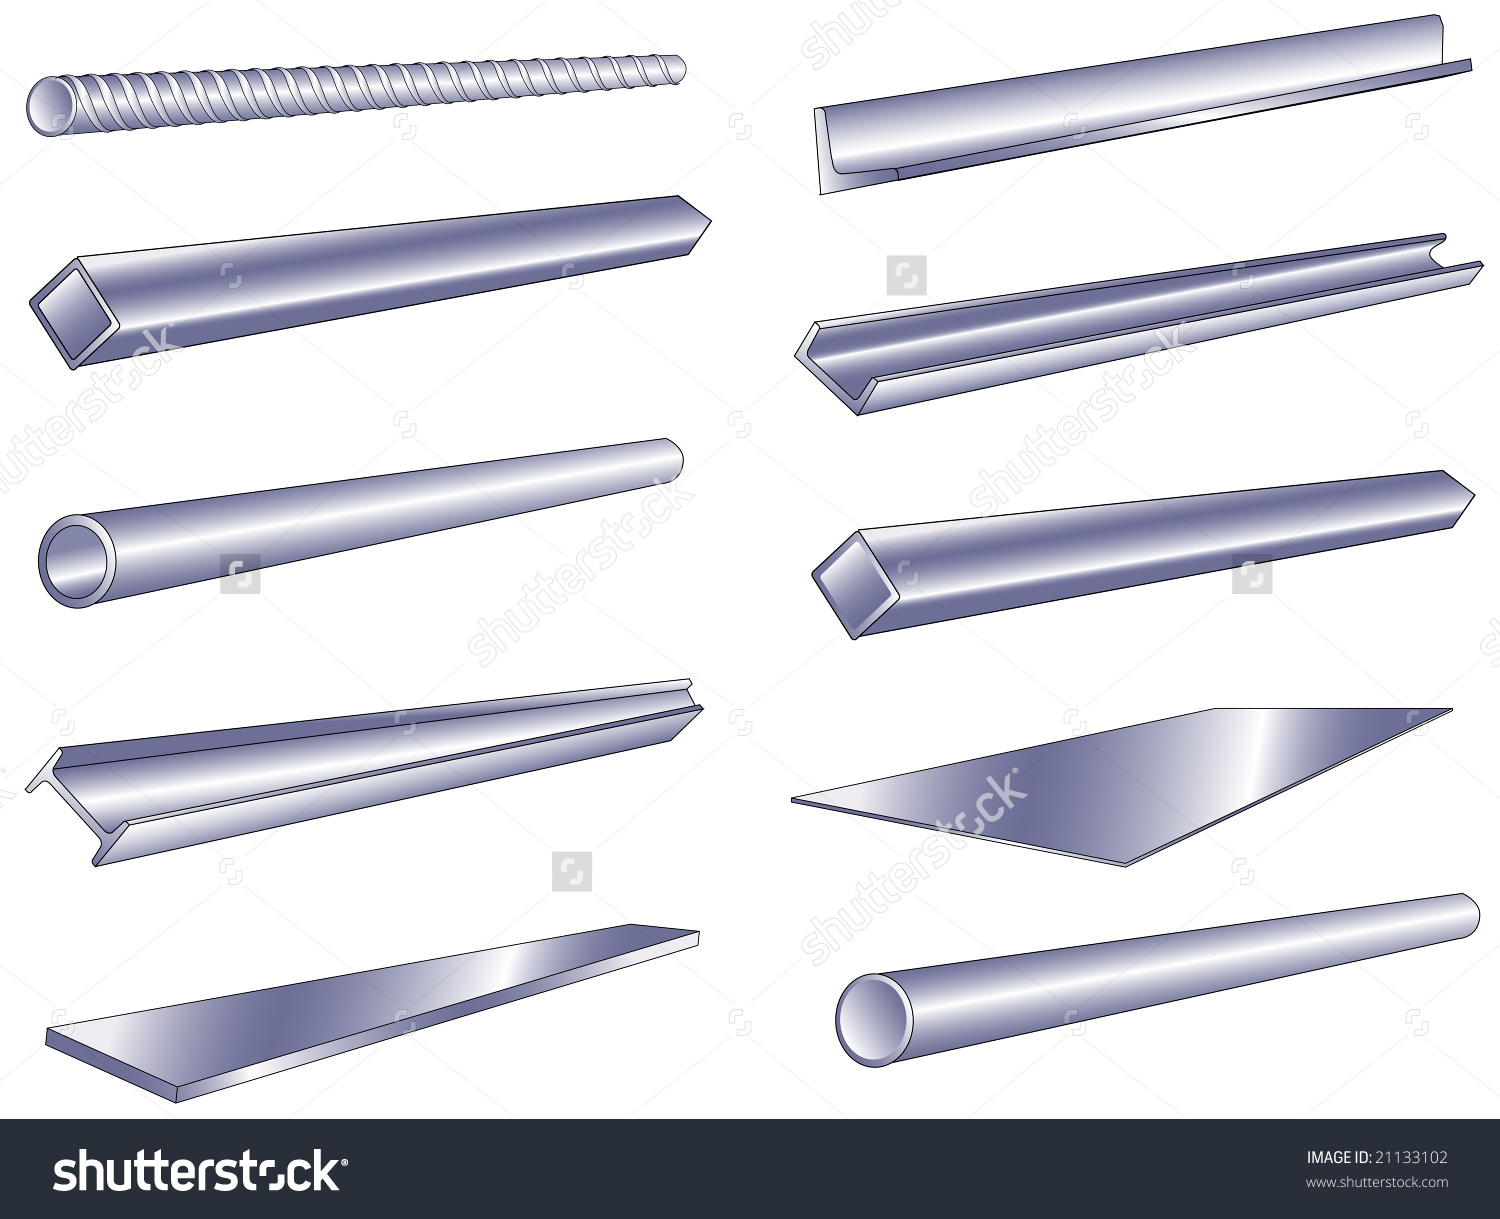 Steel Rod Isolated Stock Vectors & Vector Clip Art.